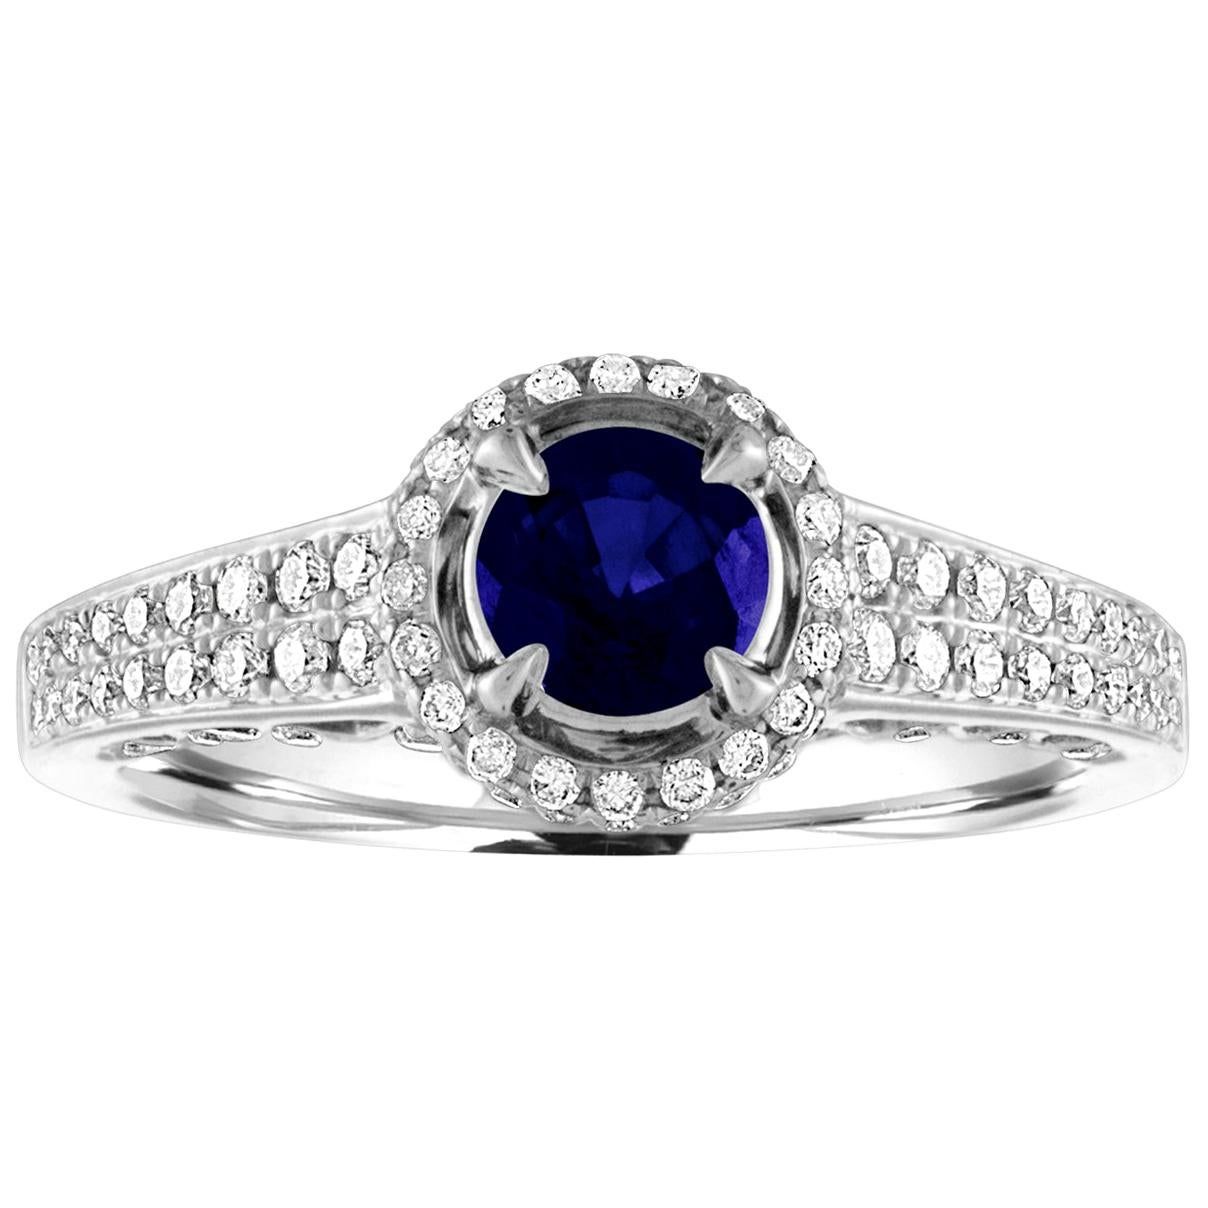 AGL Certified 0.91 Carat Round Sapphire Diamond Gold Ring